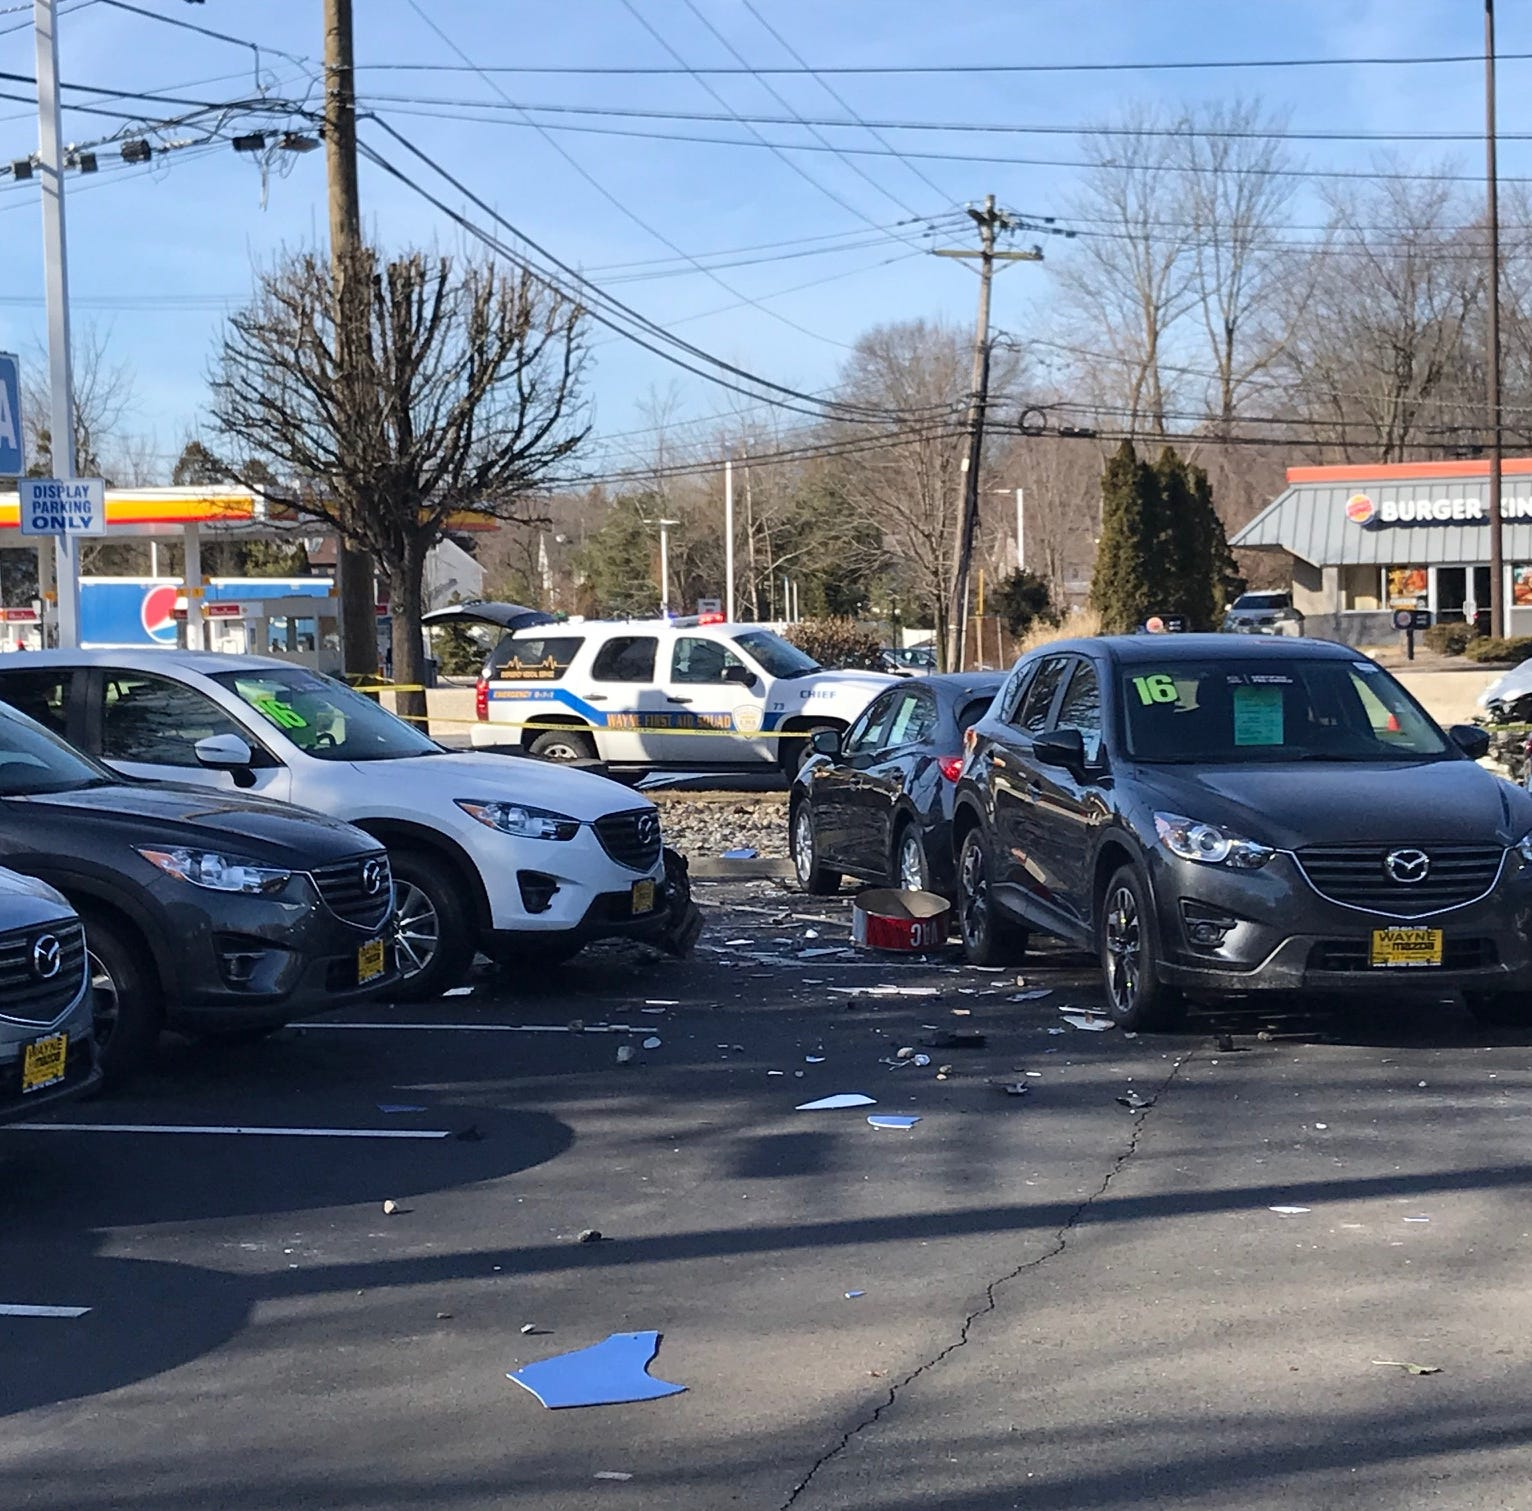 Multi-car crash at Delta gas station causing delays on Rt. 23 in Wayne